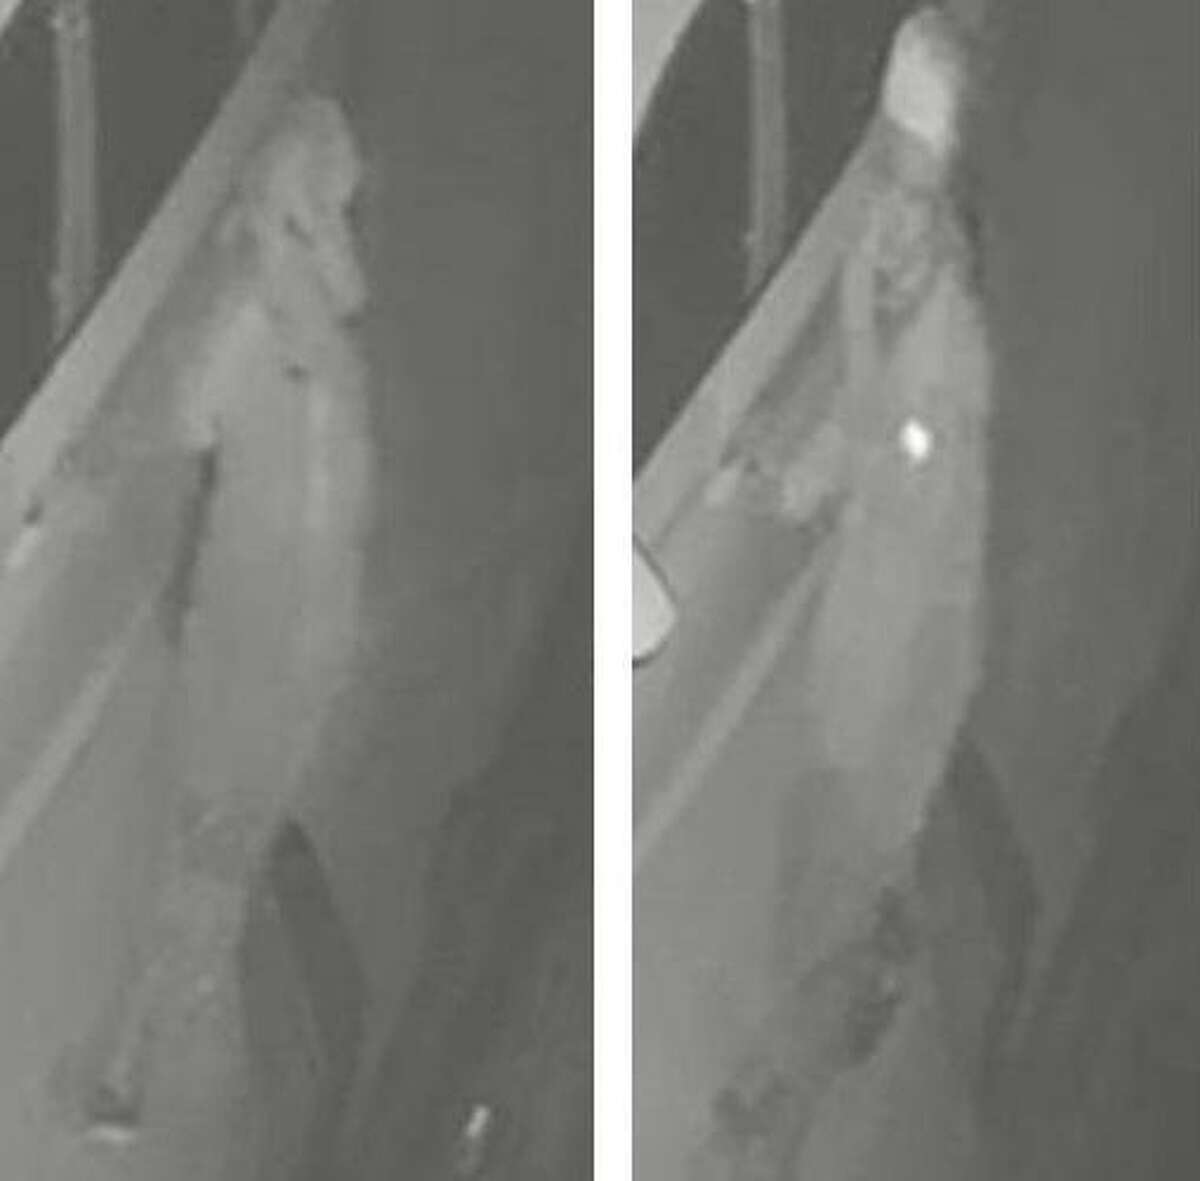 Laredo police are searching for two people in connection with a recent rash of burglaries.